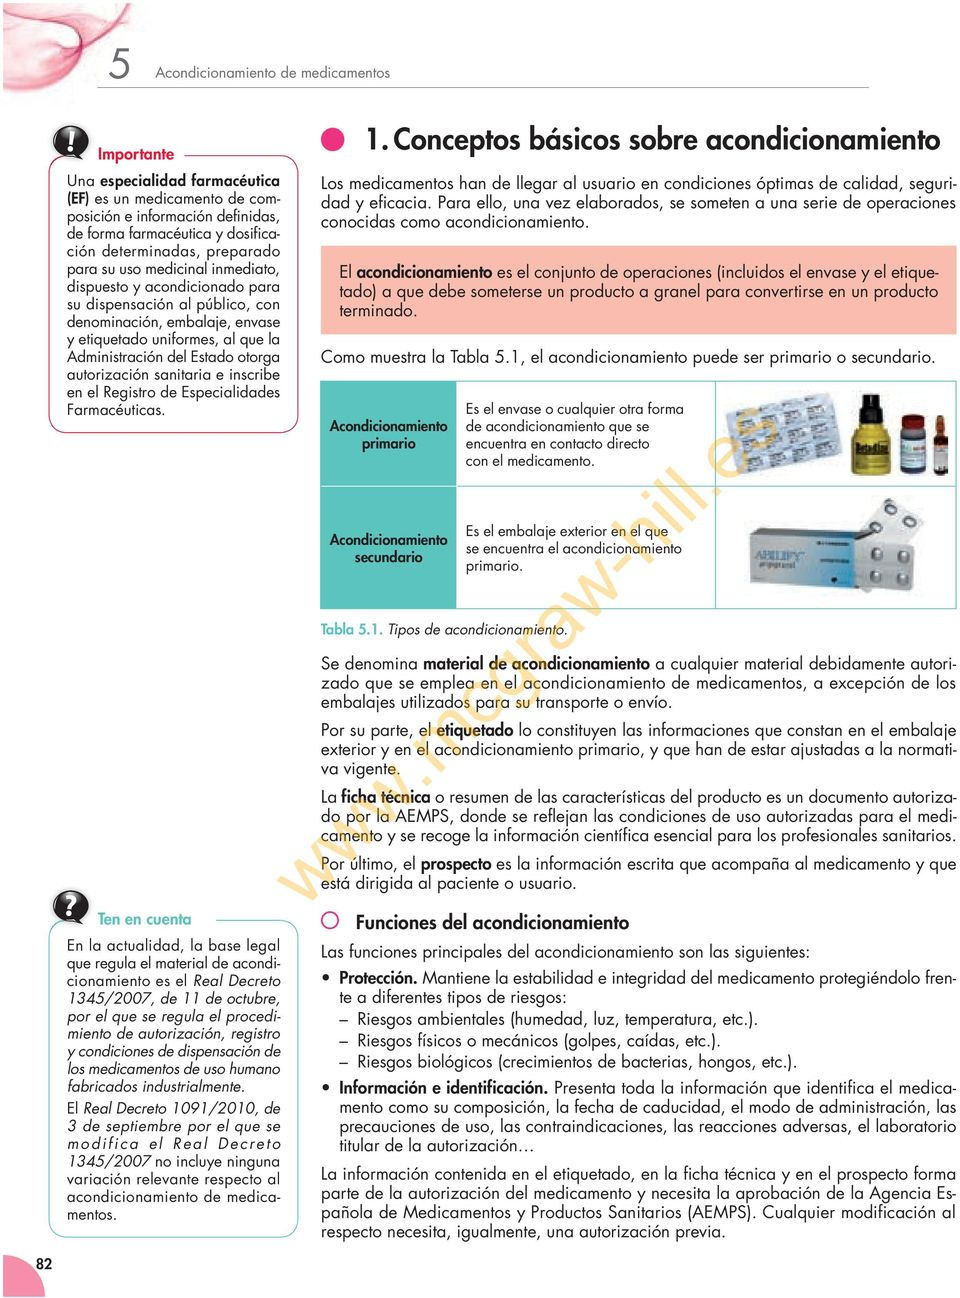 sanitaria e inscribe en el Registro de Especialidades Farmacéuticas.